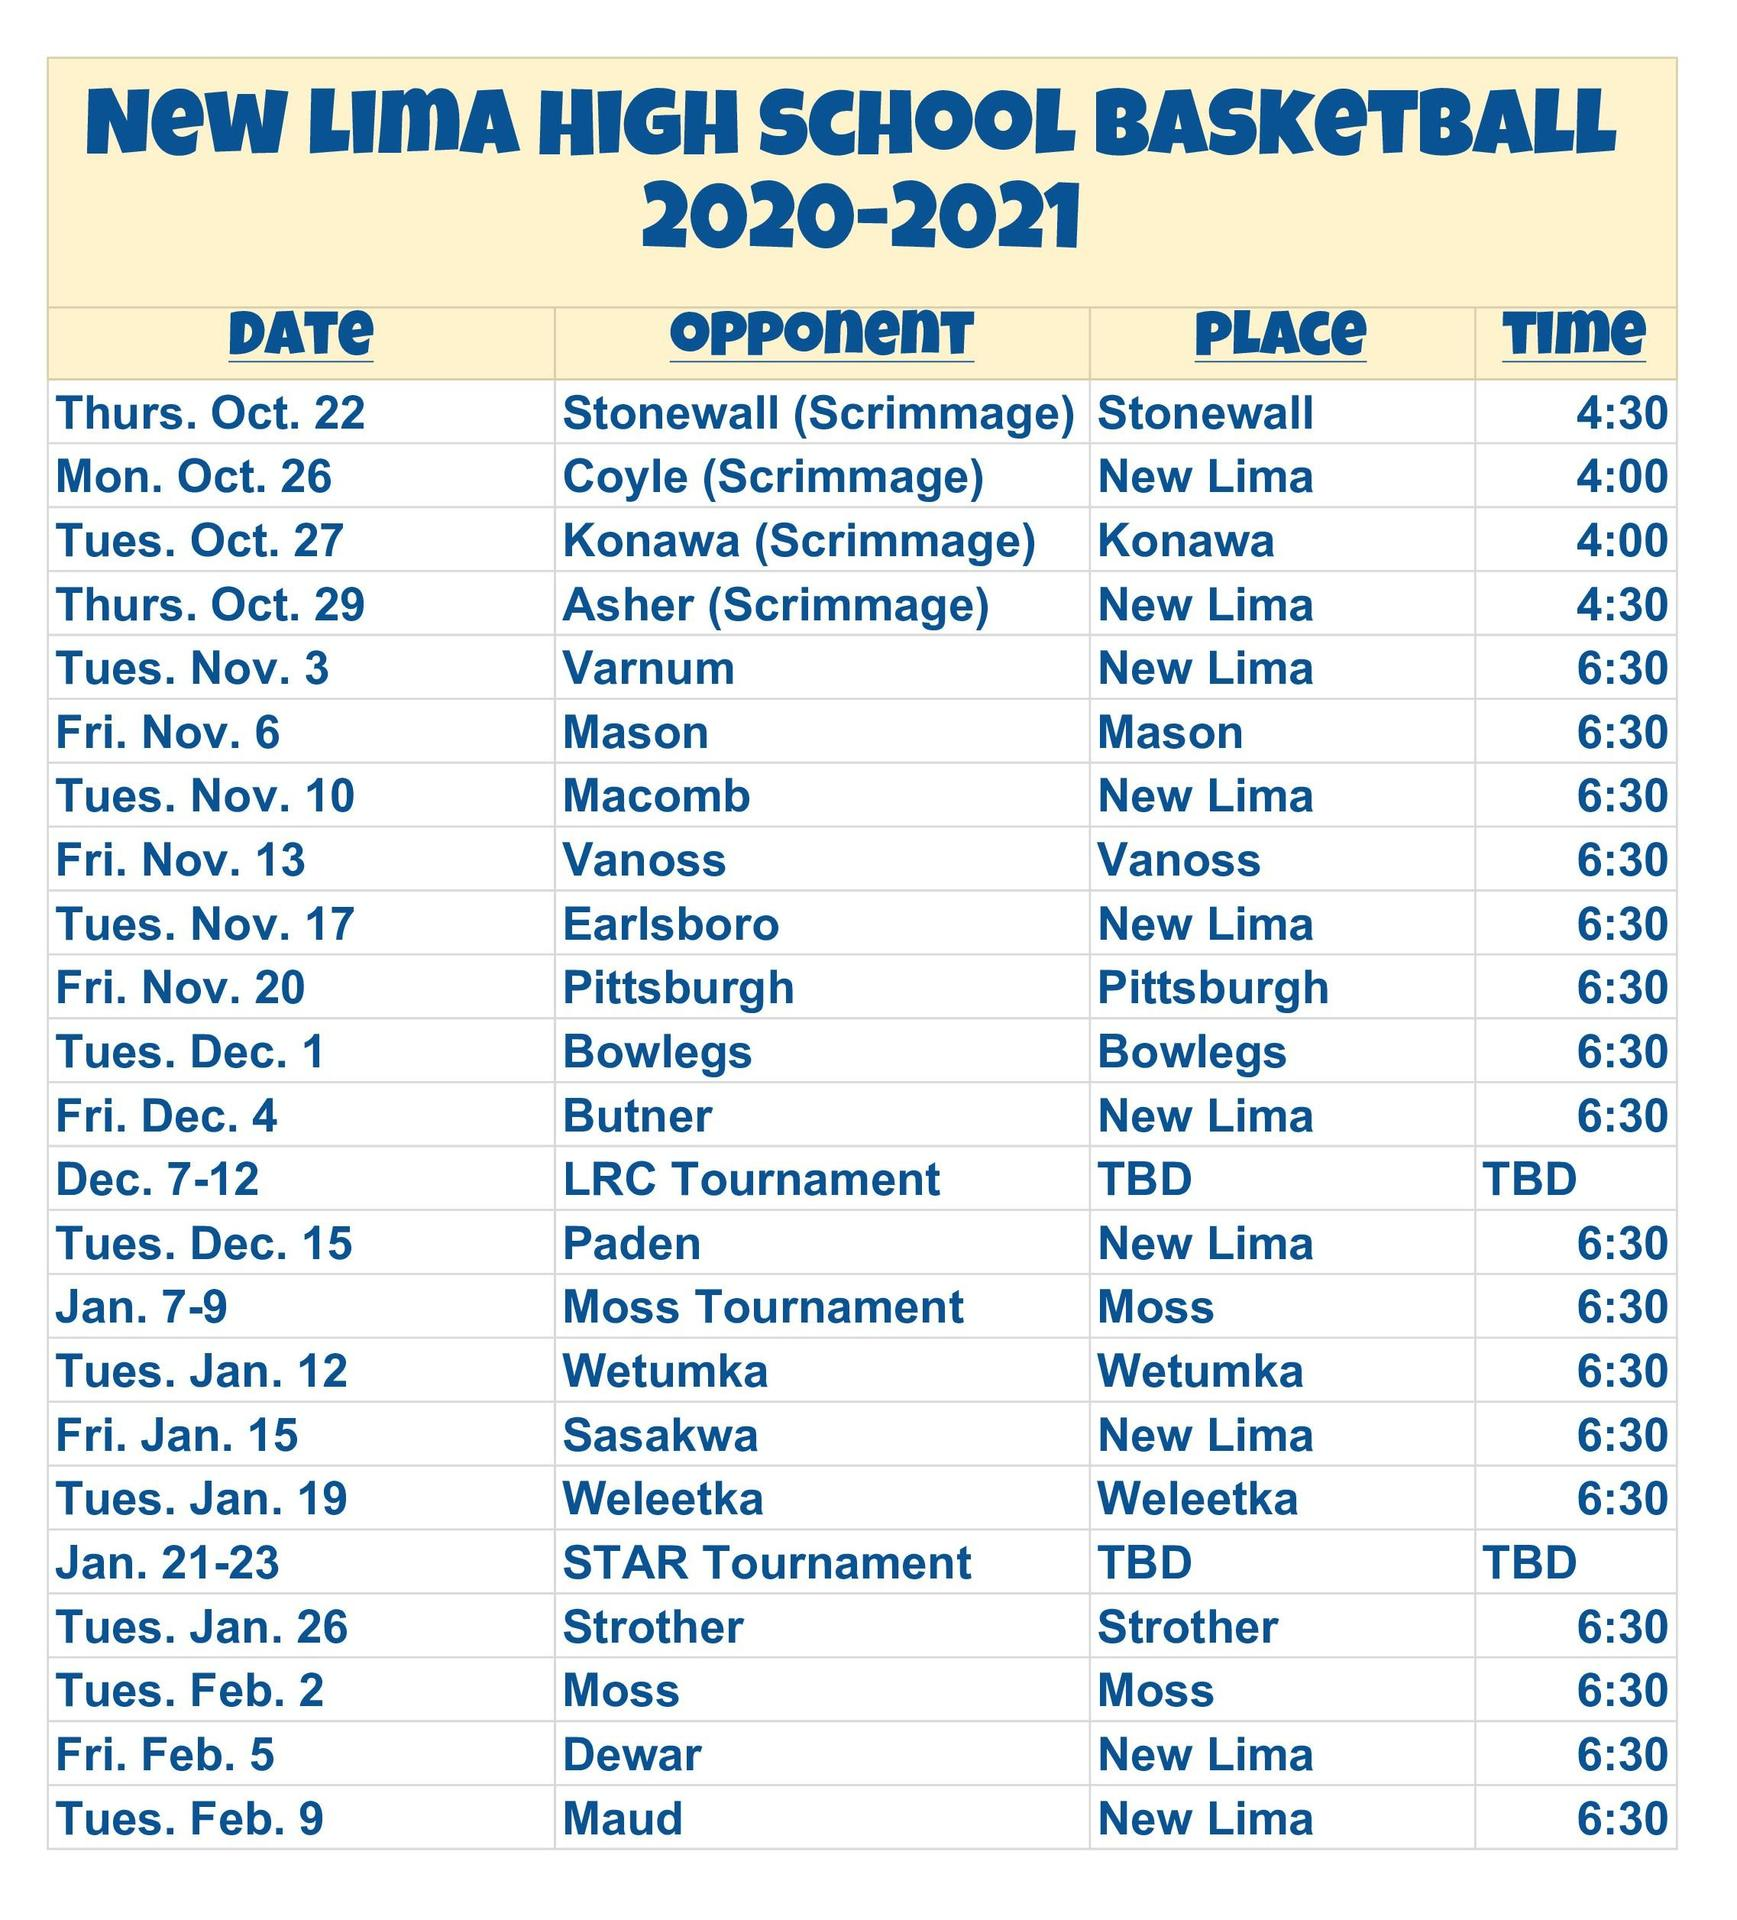 High School Basketball Schedule